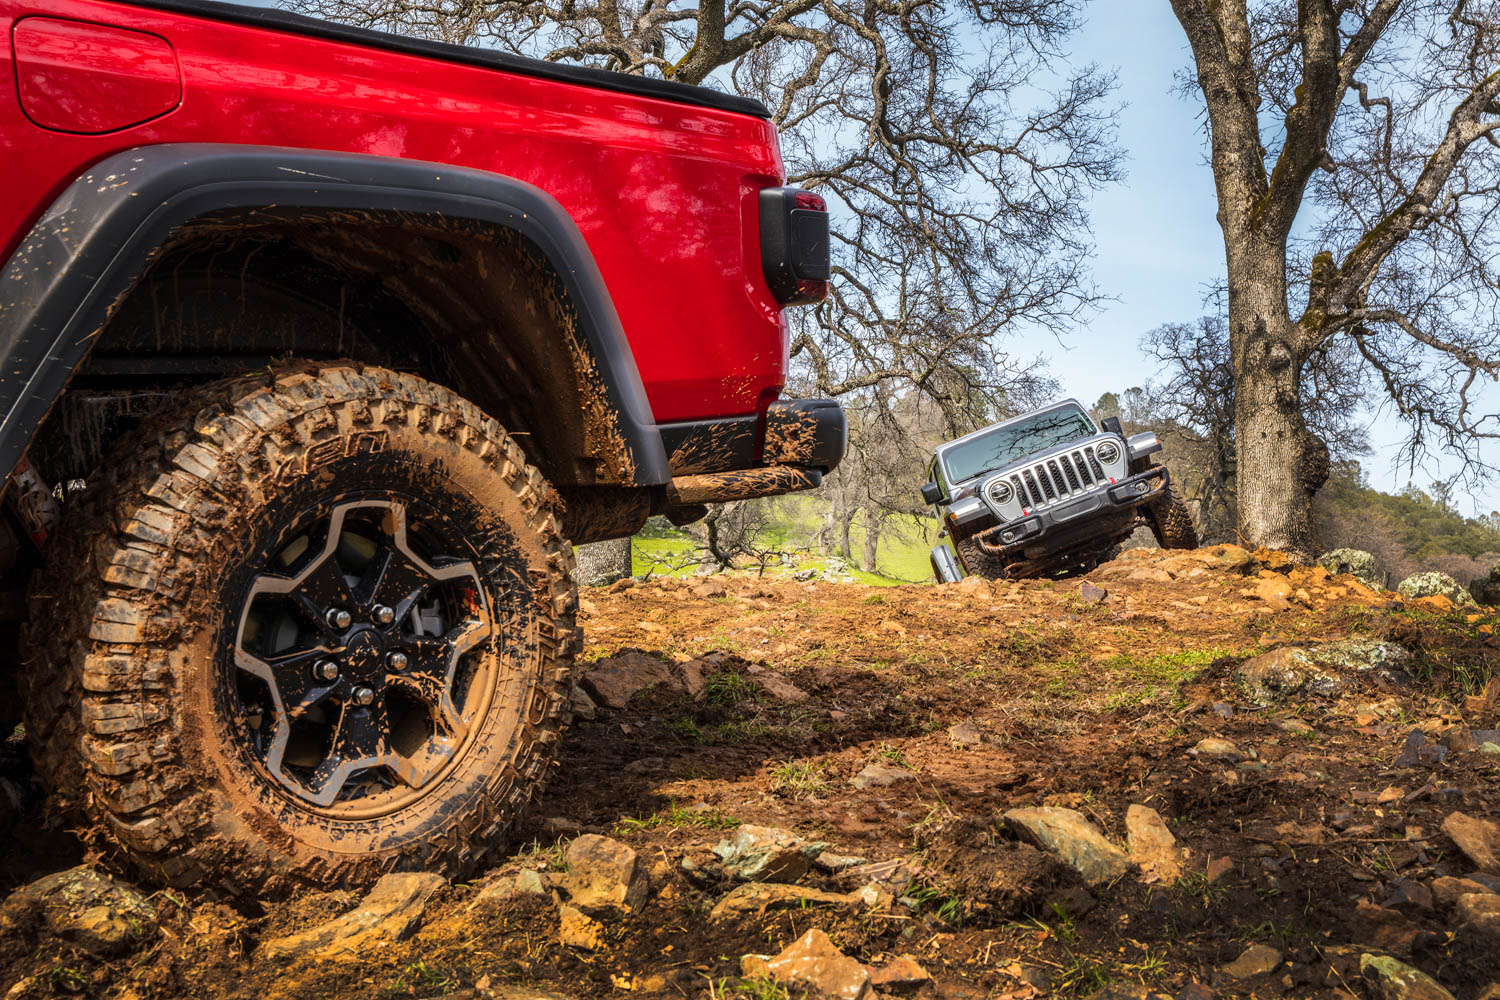 2020 Jeep Gladiator mudding